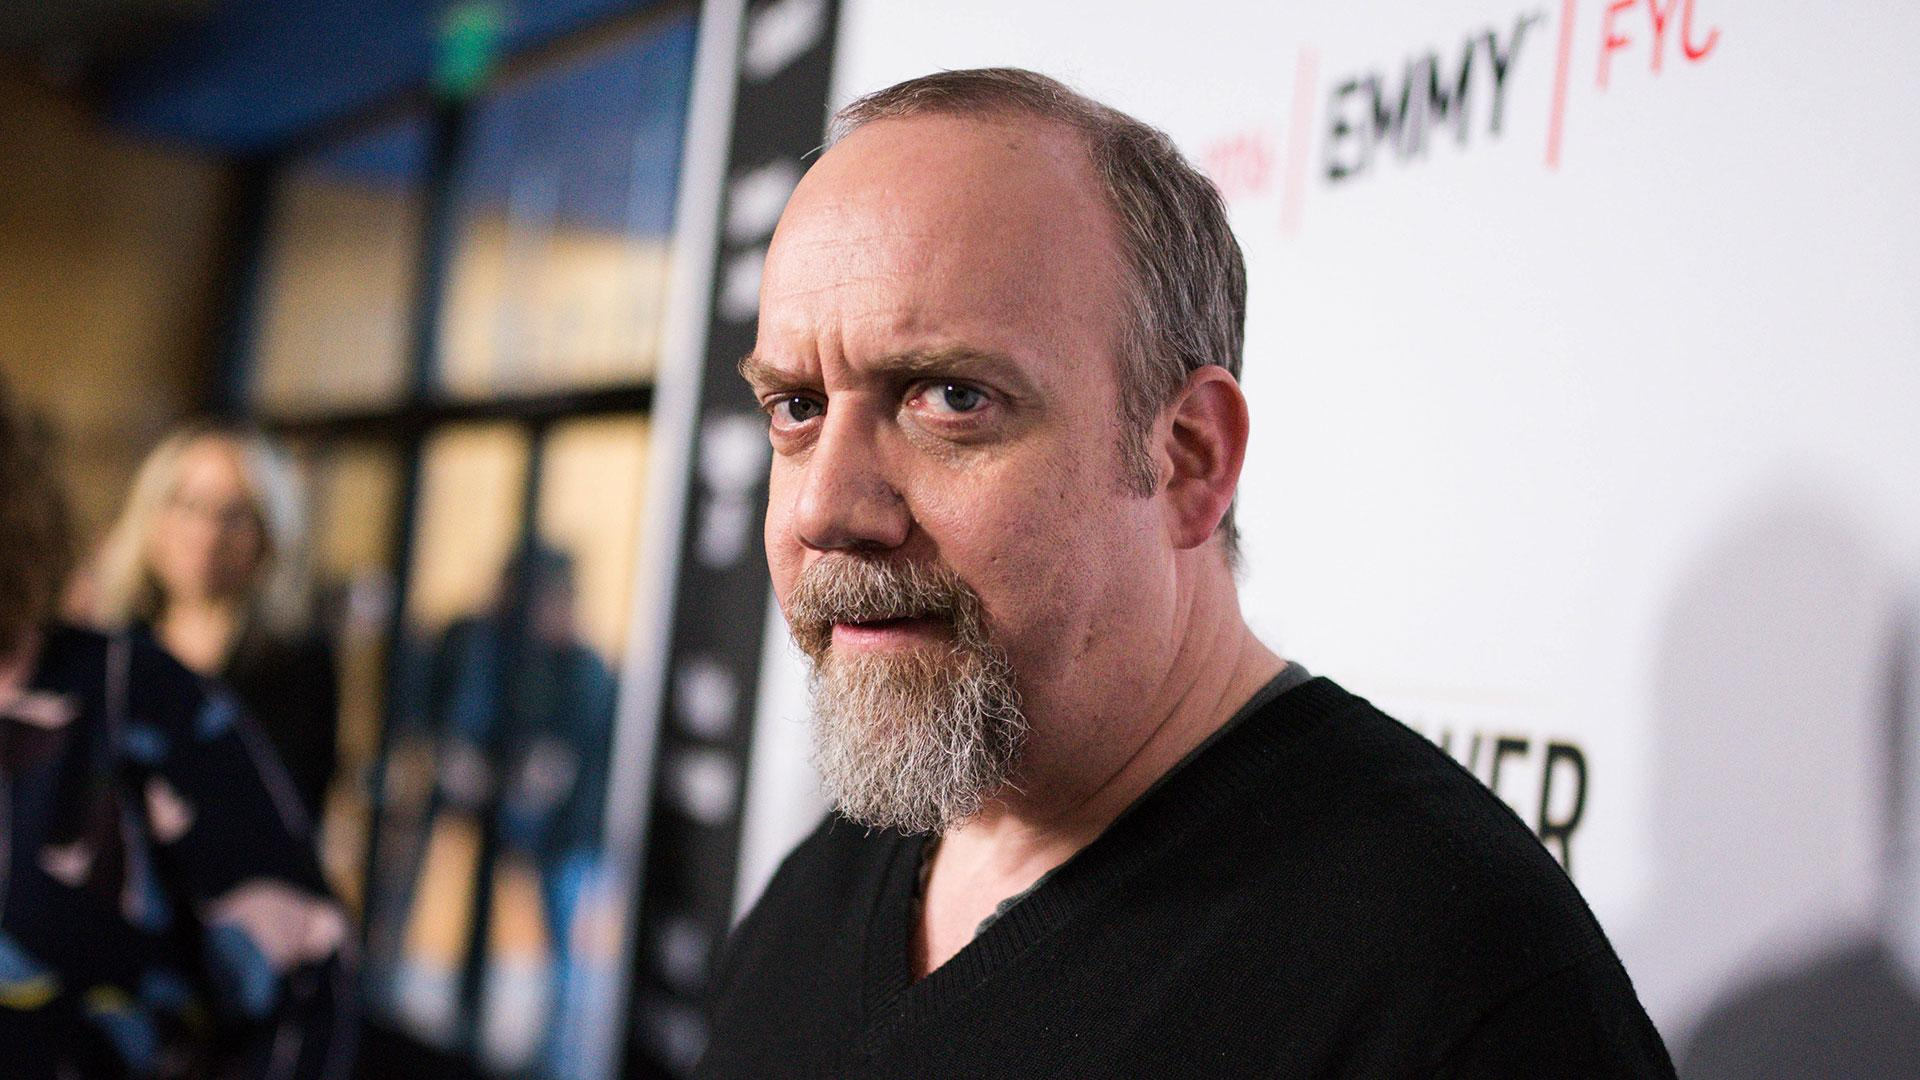 Paul Giamatti: Acting is harder than I thought it would be